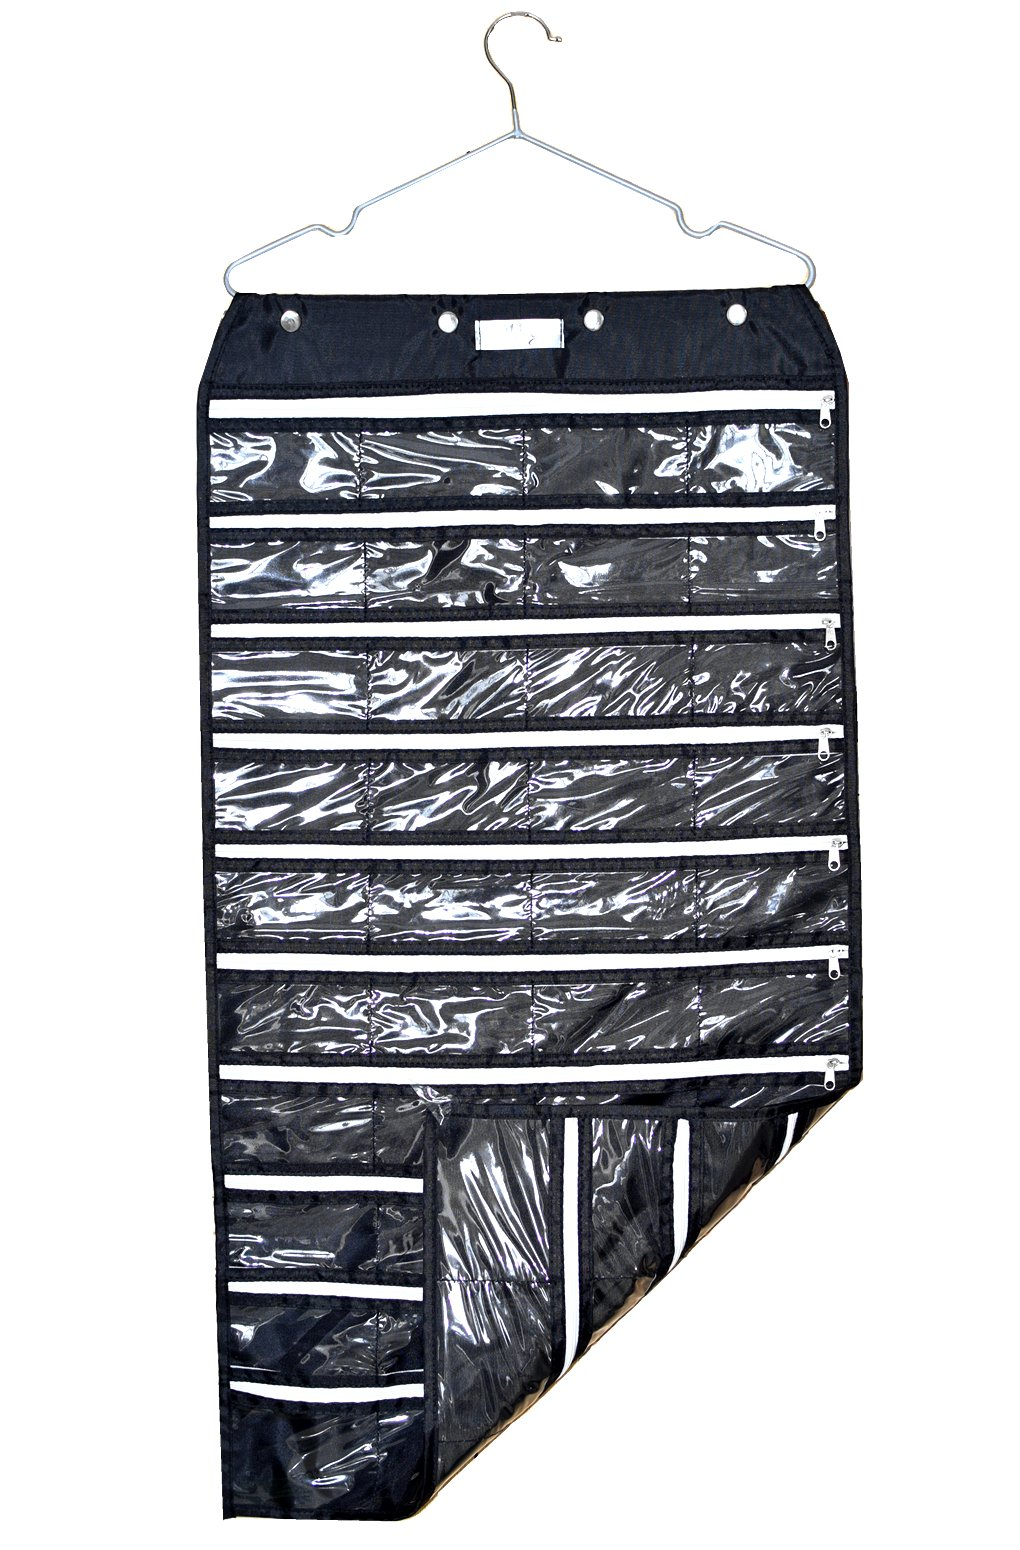 BLACK Wall Hanging Jewelry Organizer Holder 80Pockets Double Sided